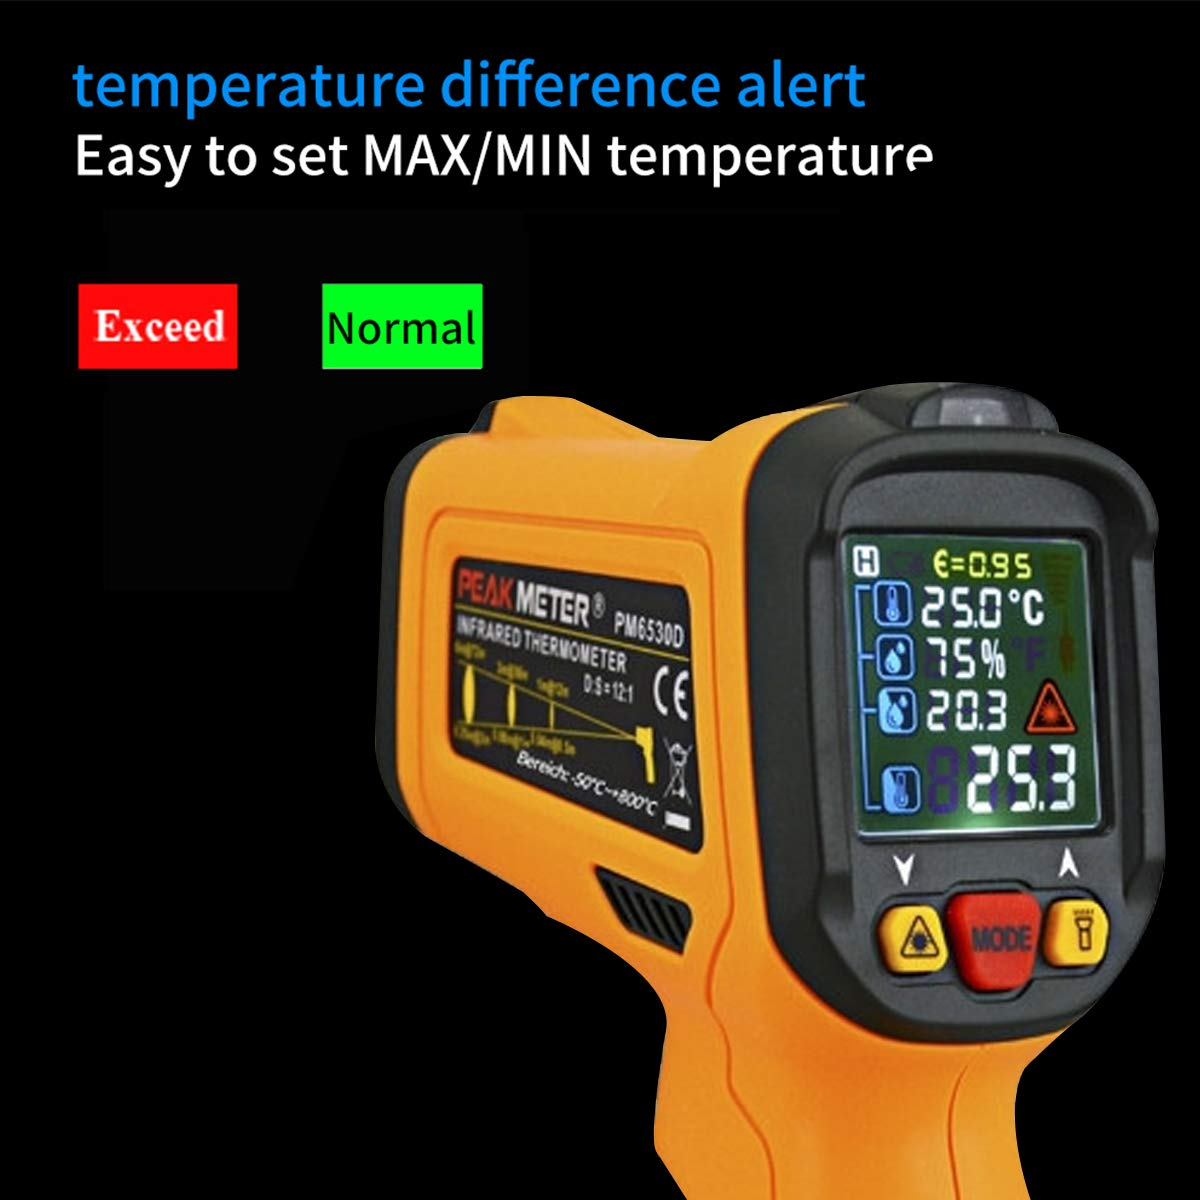 Laser Infrared Thermometer,HANMER Non Contact Temperature Gun Instant-Read -58 ℉to 1472℉with LED Display K-Type Thermocouple for Kitchen Cooking BBQ Automotive and Industrial PM6530D Thermometer by HANMATEK (Image #2)